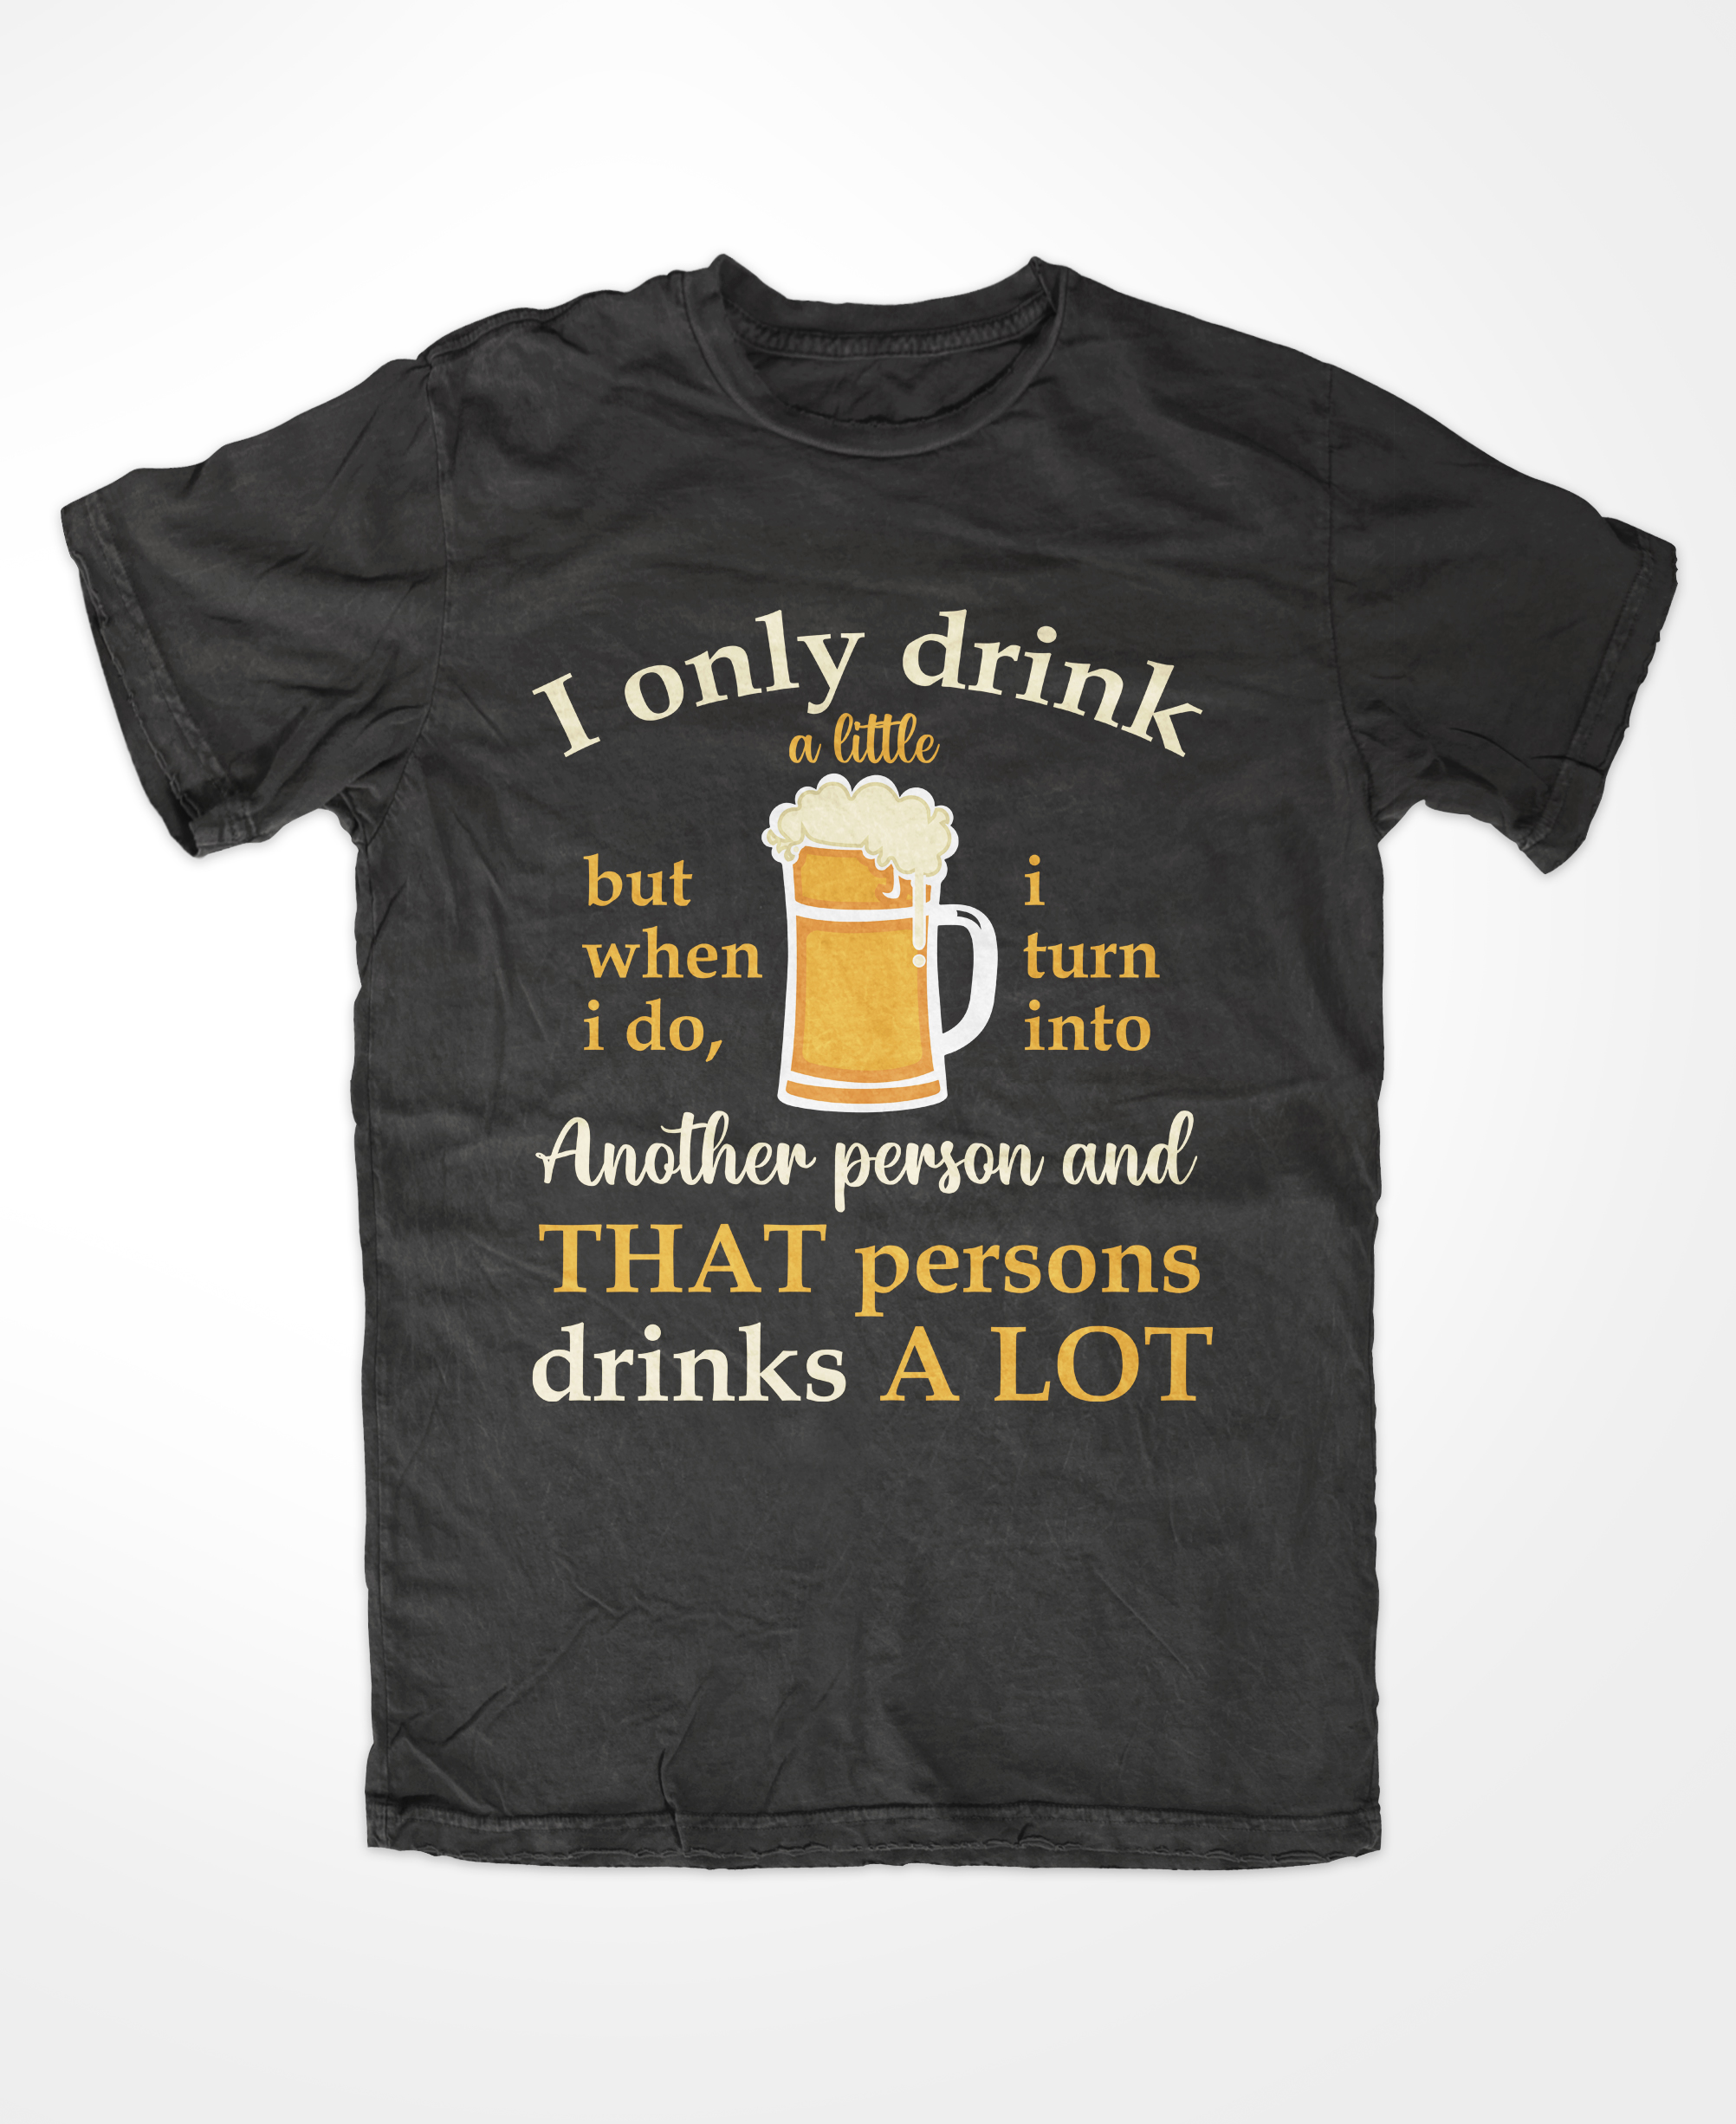 I will do awesome t shirt design typography graphic t shirt designs also for pod